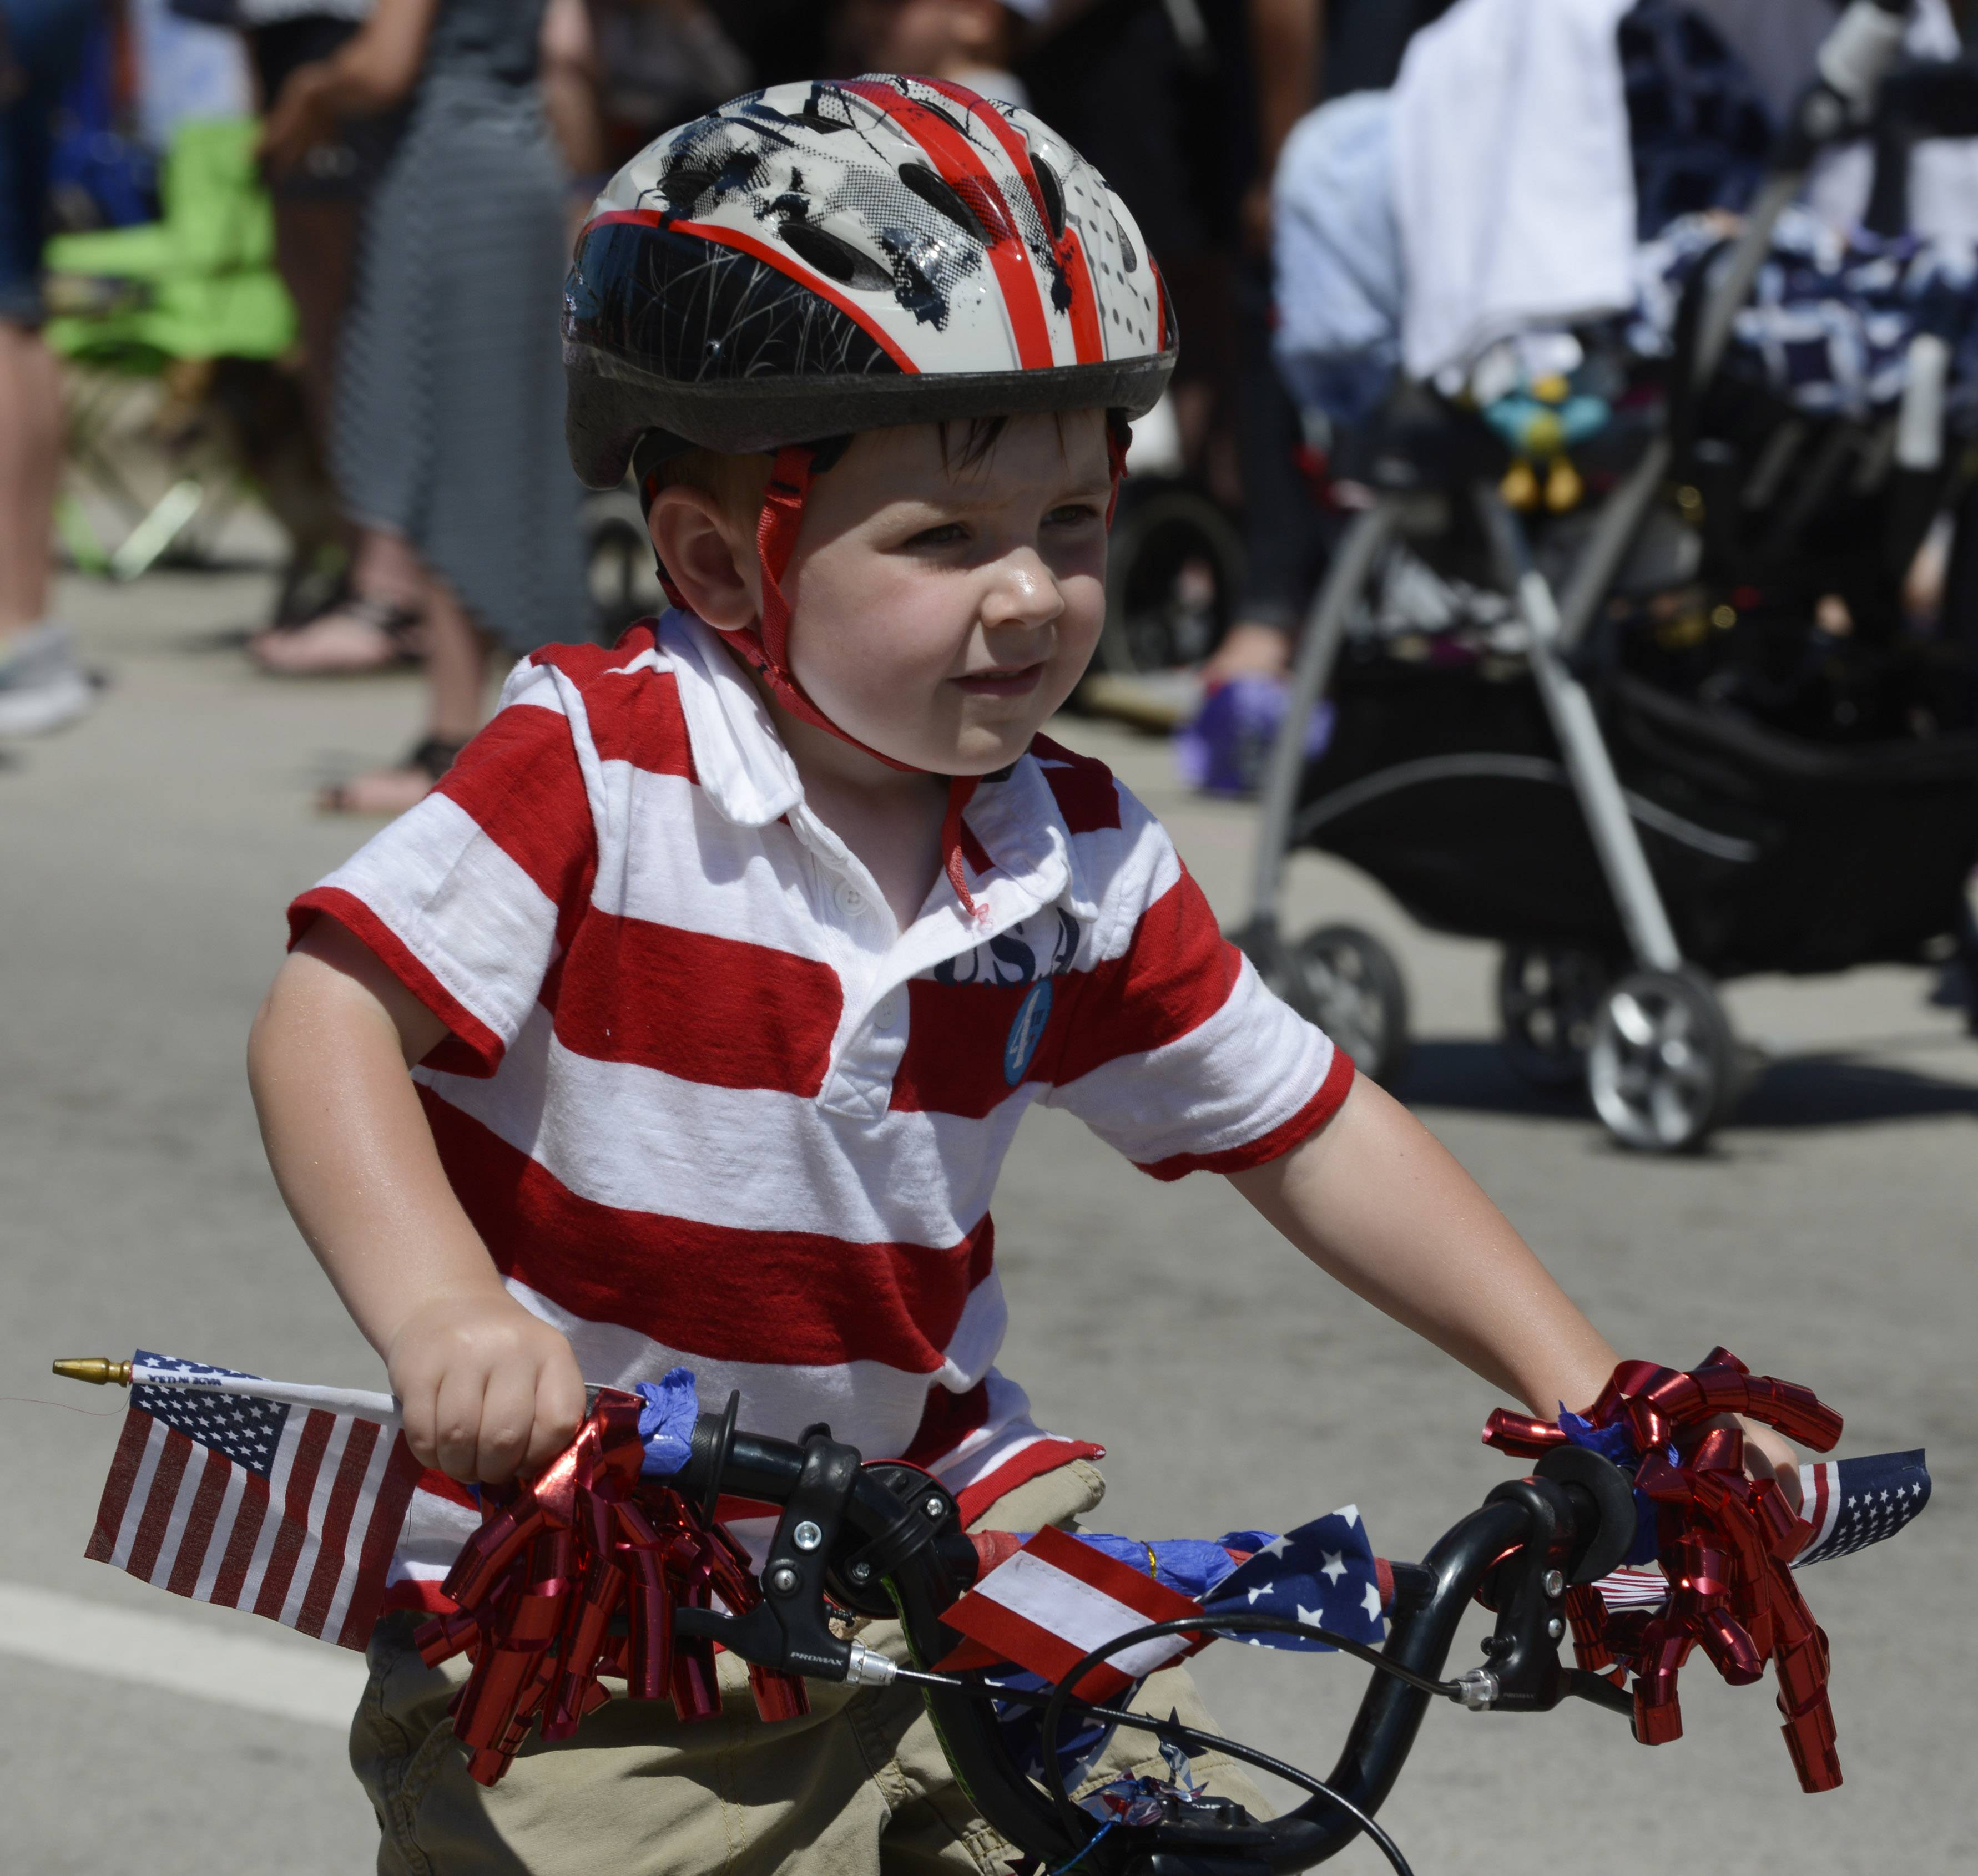 Ben Weibel, 3, of Barrington rides his bike in the Barrington Fourth of July parade Friday.